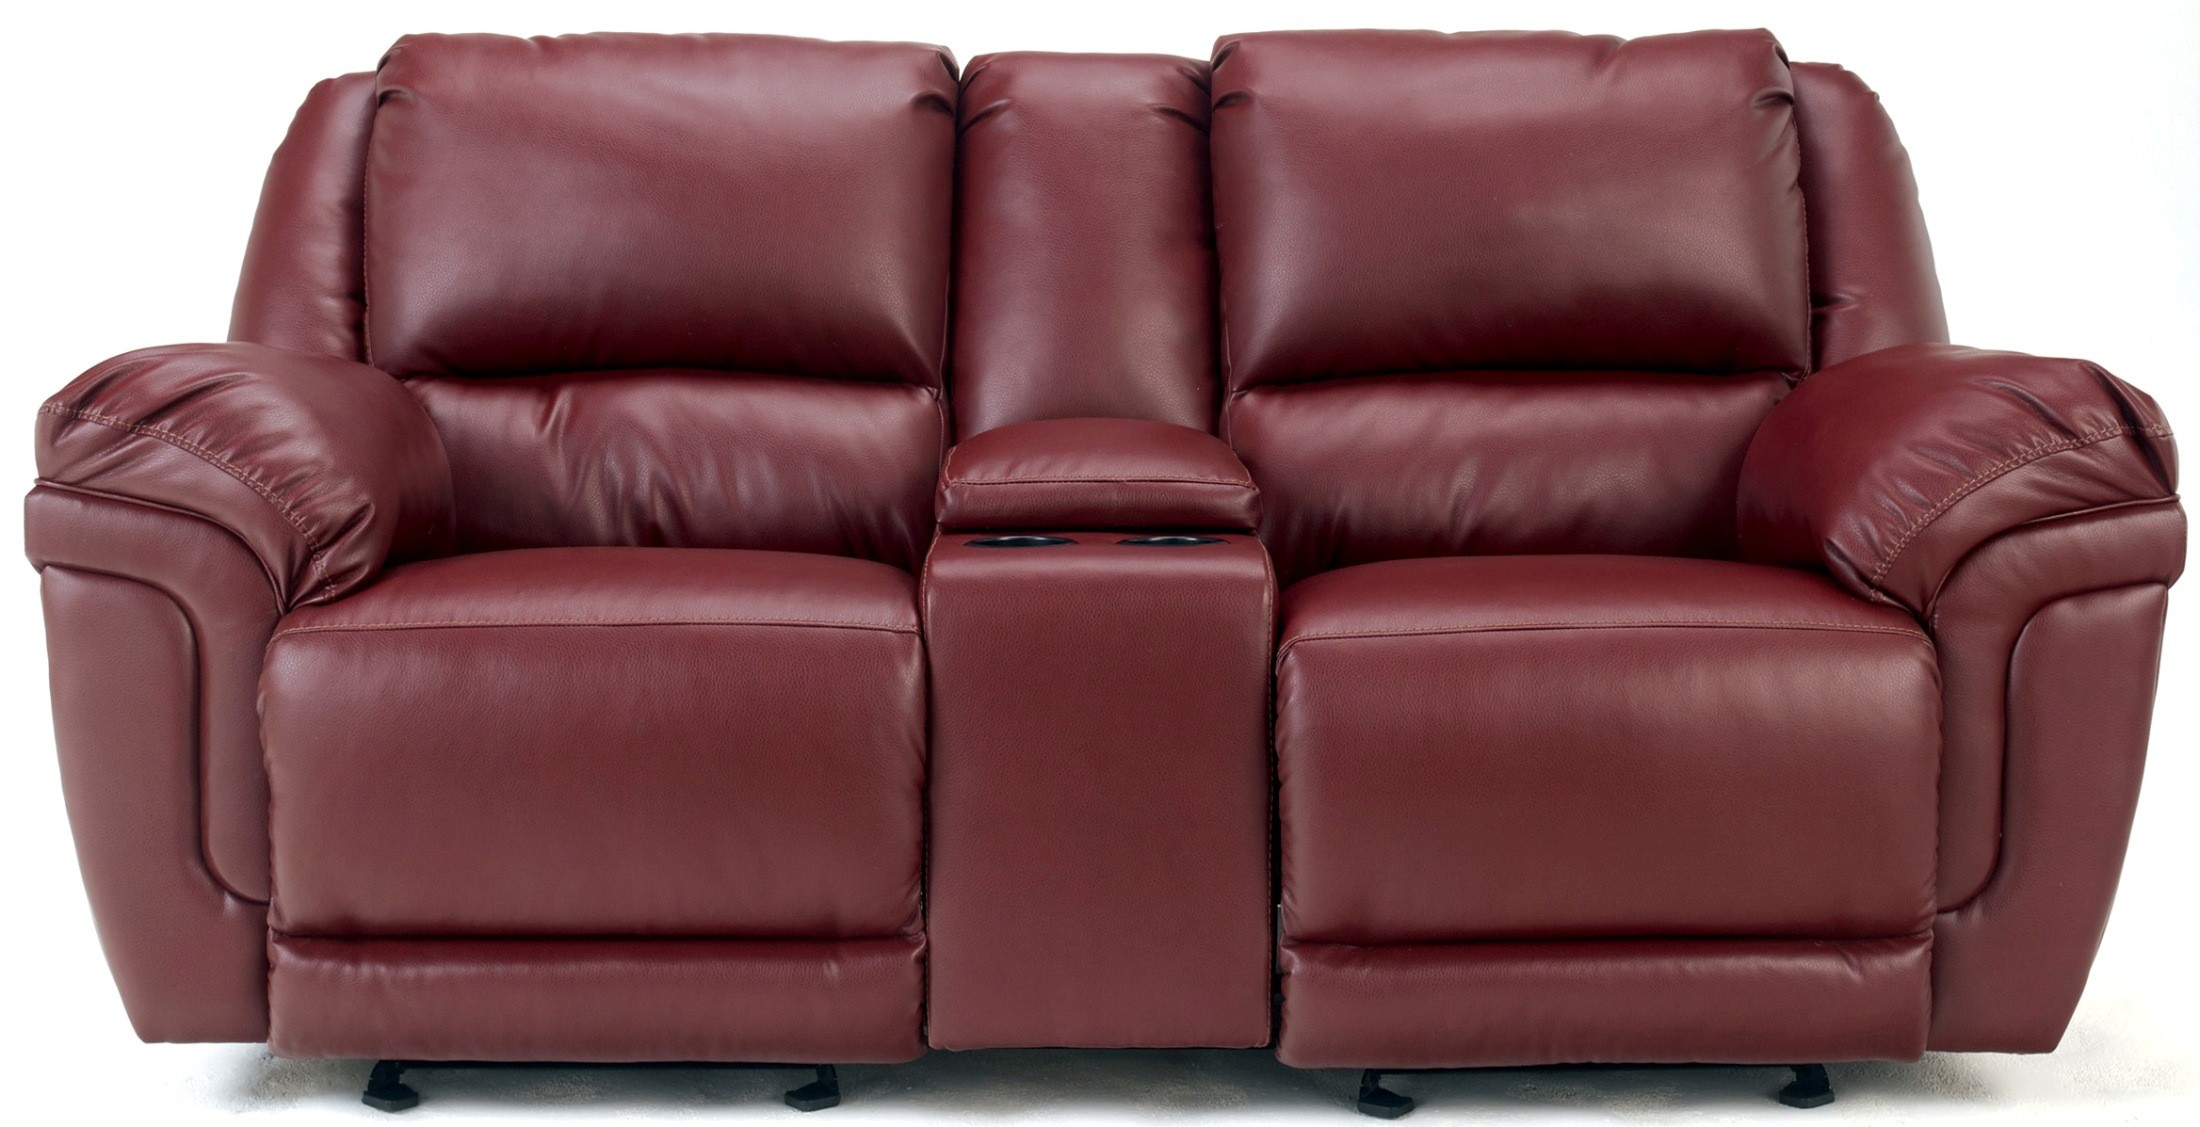 Ashley Magician Durablend Garnet Dual Glider Reclining Loveseat With Console